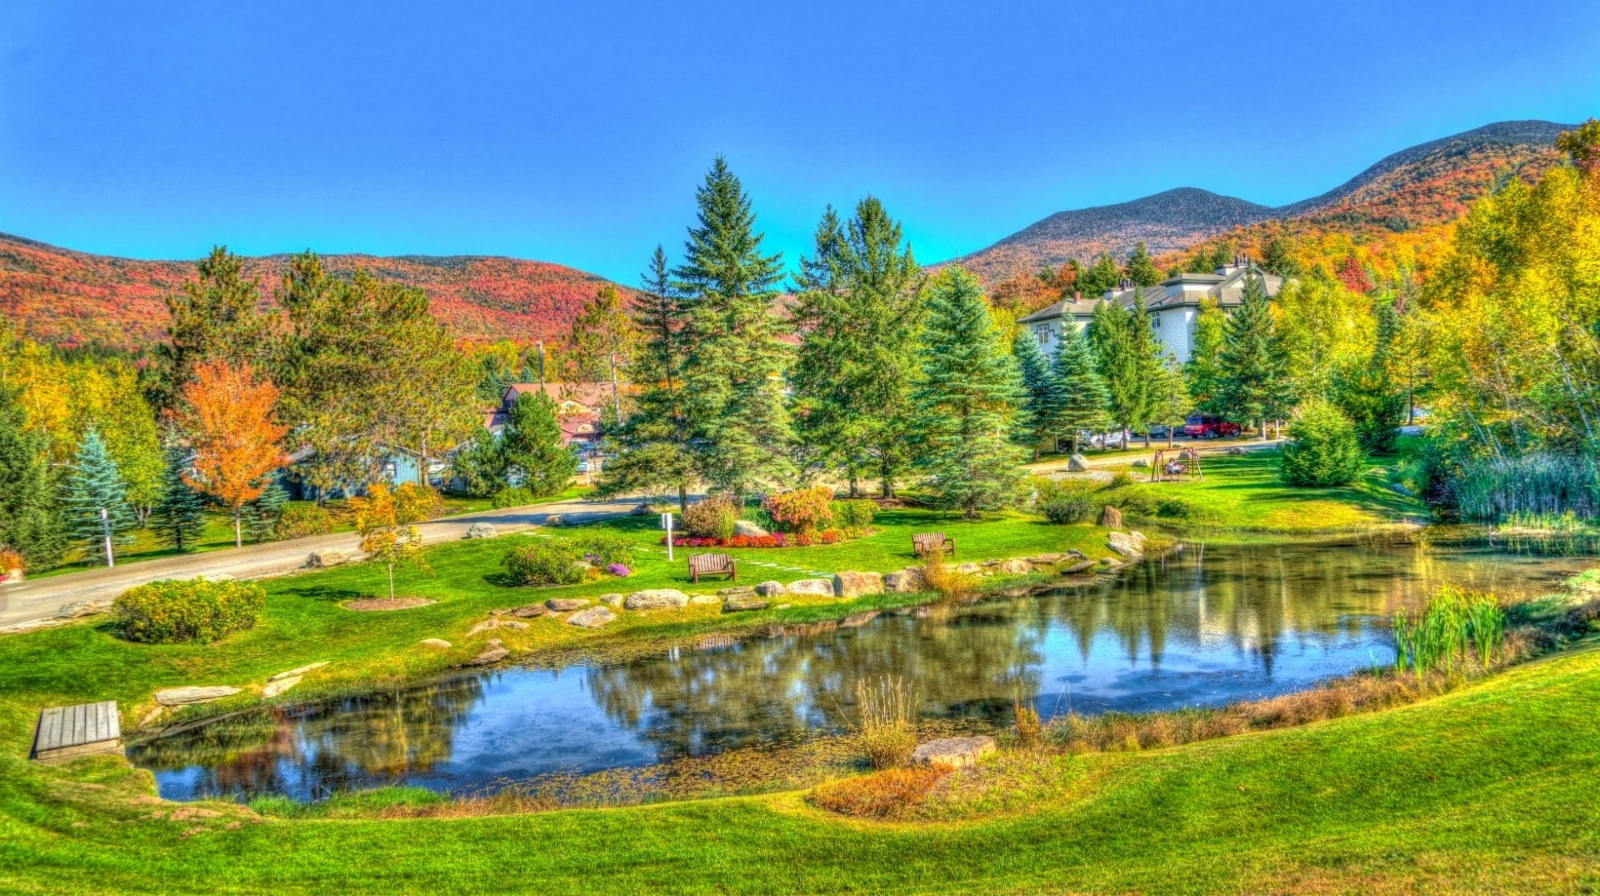 Top places to retire in Vermont -Fall with vibrant colors, reflections on the pond, blue skies, and hills dotted with autumn colors. Houses are tucked amongst the trees